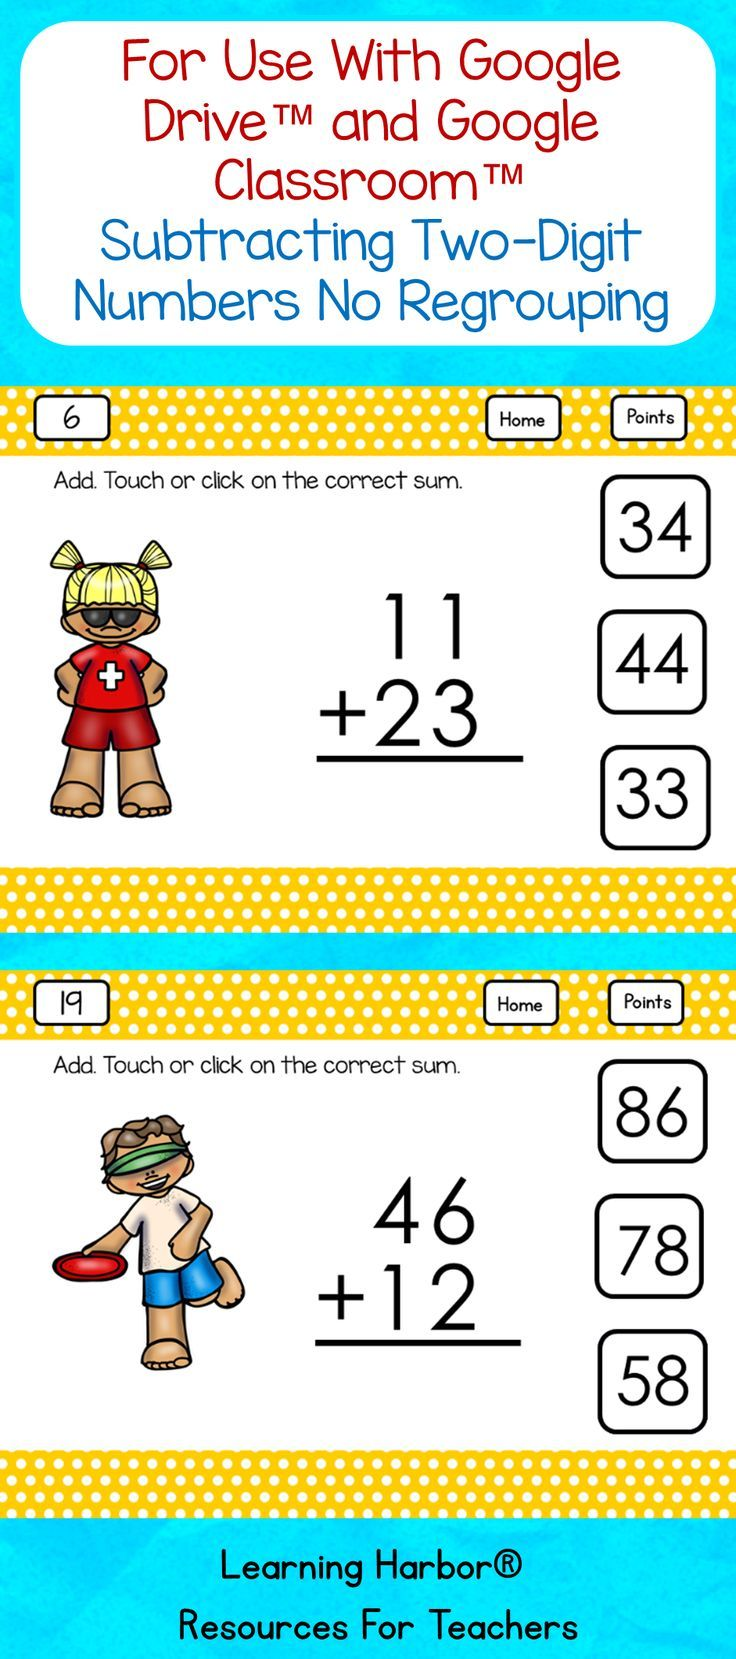 Distance Learning Add 2 Digits No Regrouping Beach Kids For Google Classroom Online Math Google Classroom Resources Resource Classroom How to teach two digit addition without